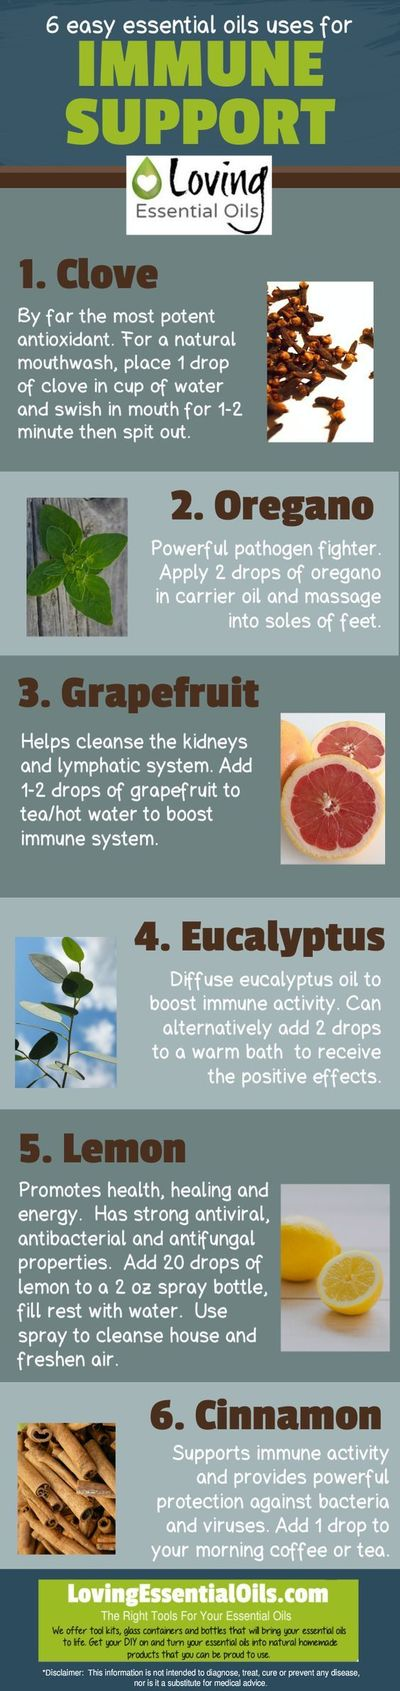 Essential oils are natures miracle makers. They can help improve immune system naturally. The immune system protects your body from infections, foreign bodies a